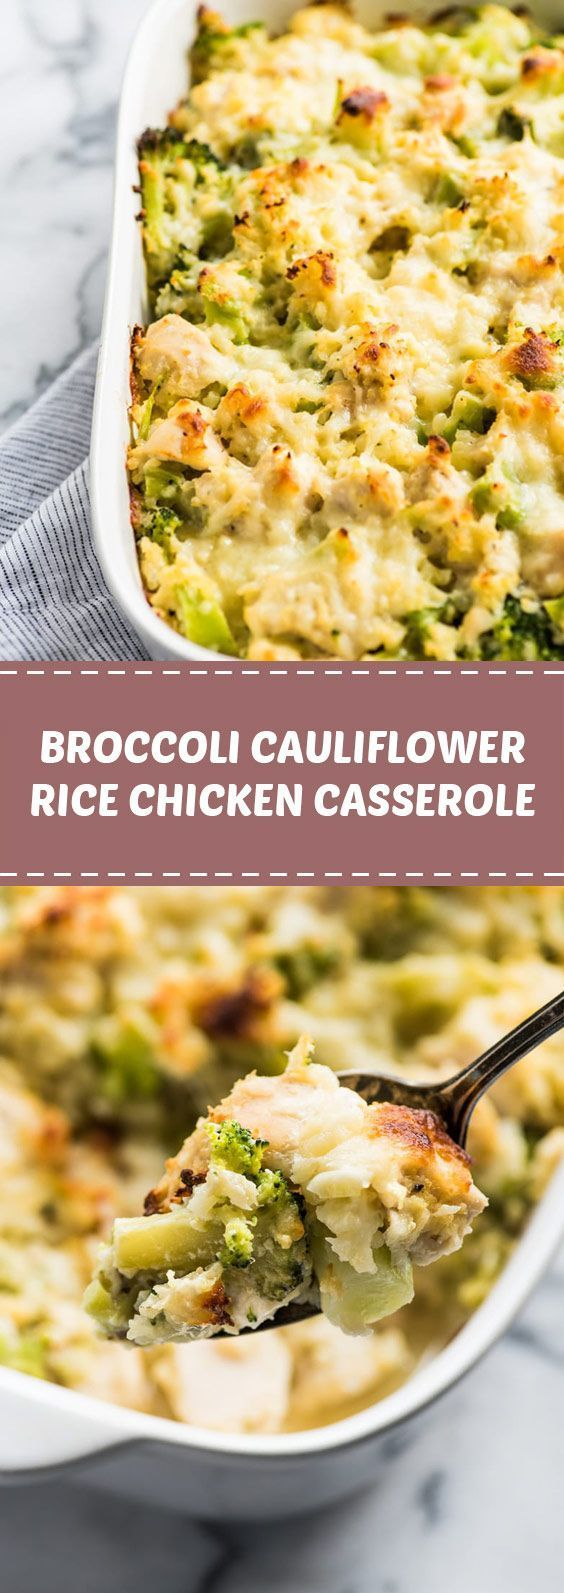 Broccoli Cauliflower Rice Chicken Casserole: Taking zootles for a bag of cauliflower ...   - Rice Recipes -